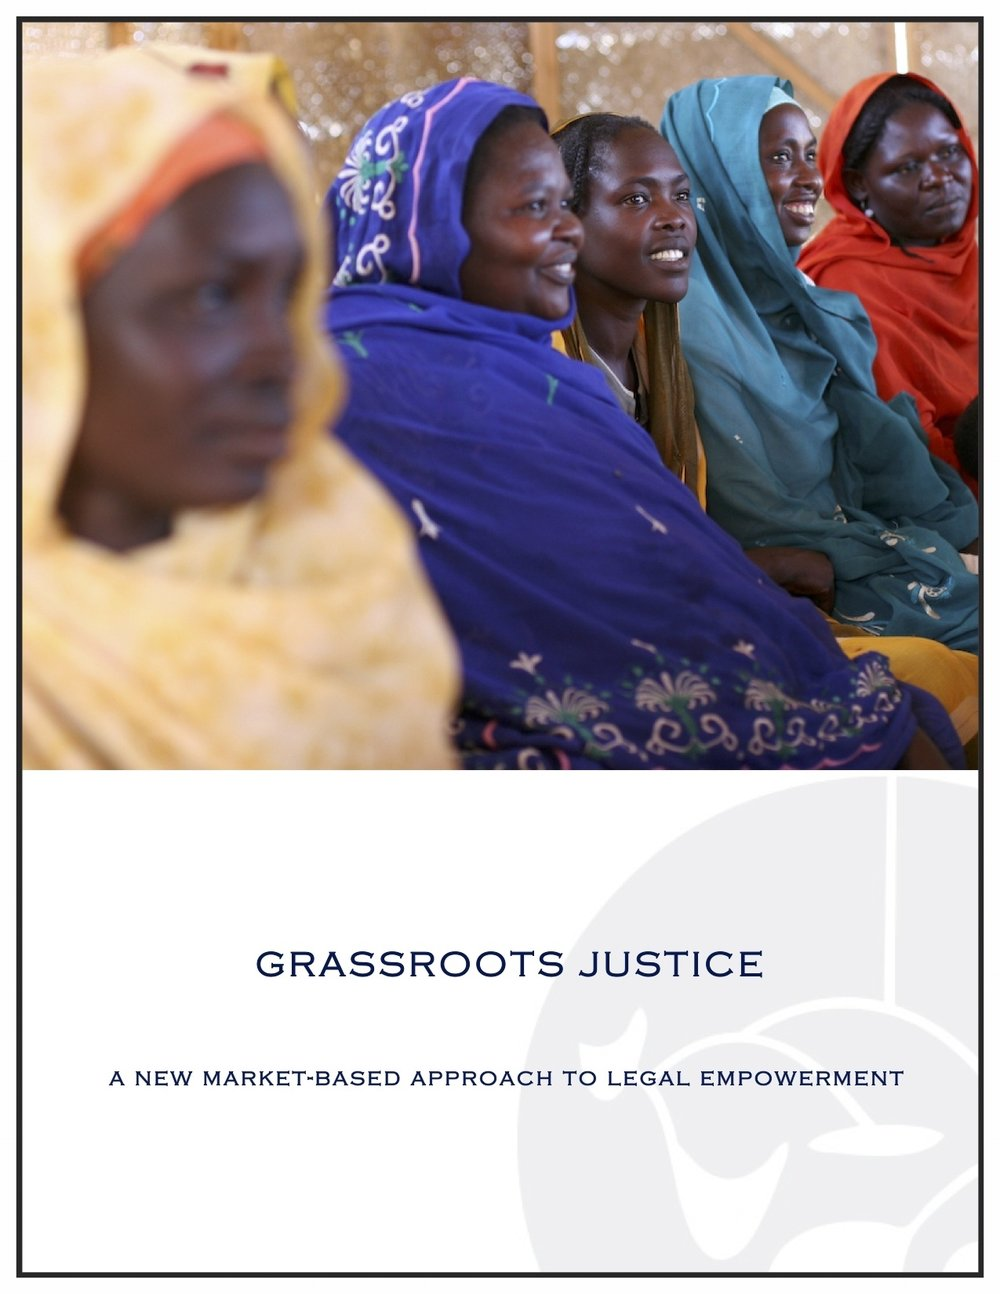 Grassroots Justice: A New Market-Based Approach to Legal Empowerment